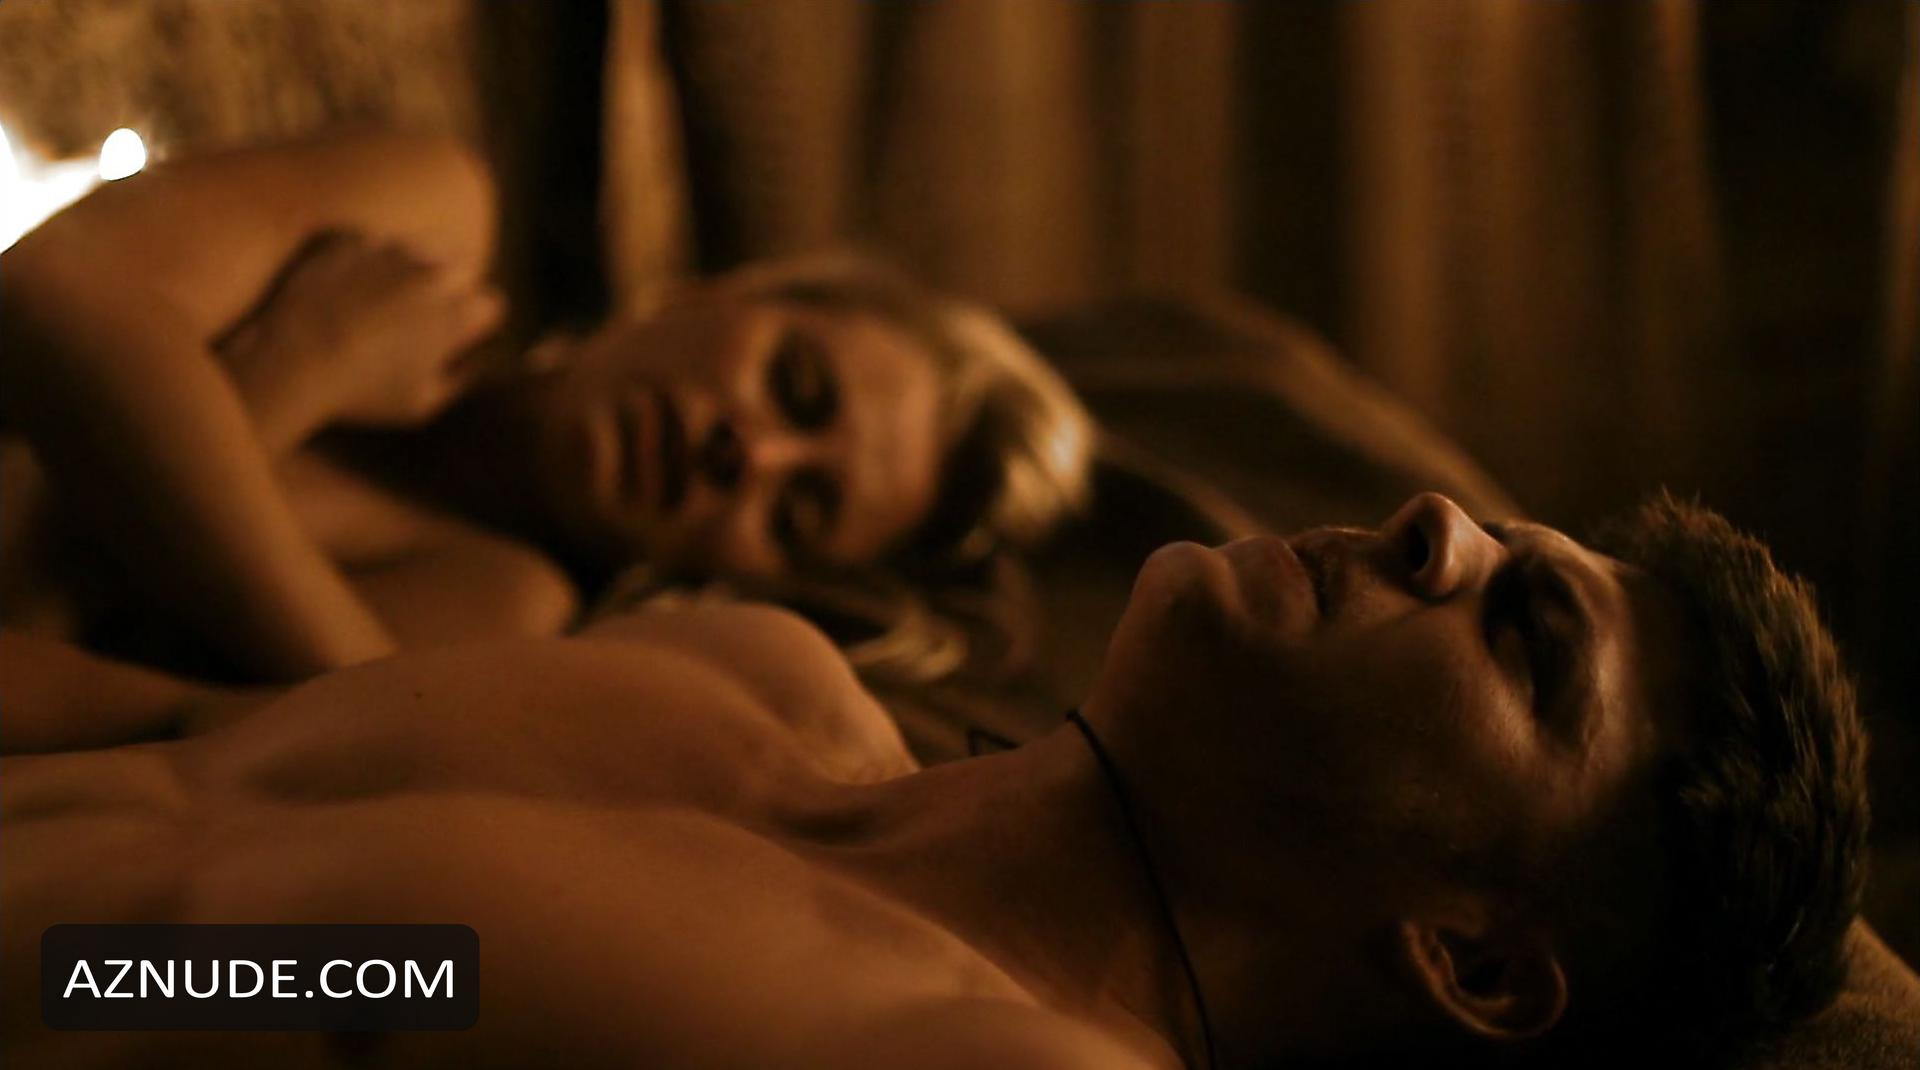 Jennie jacques nude sex from vikings on scandalplanetcom - 1 4